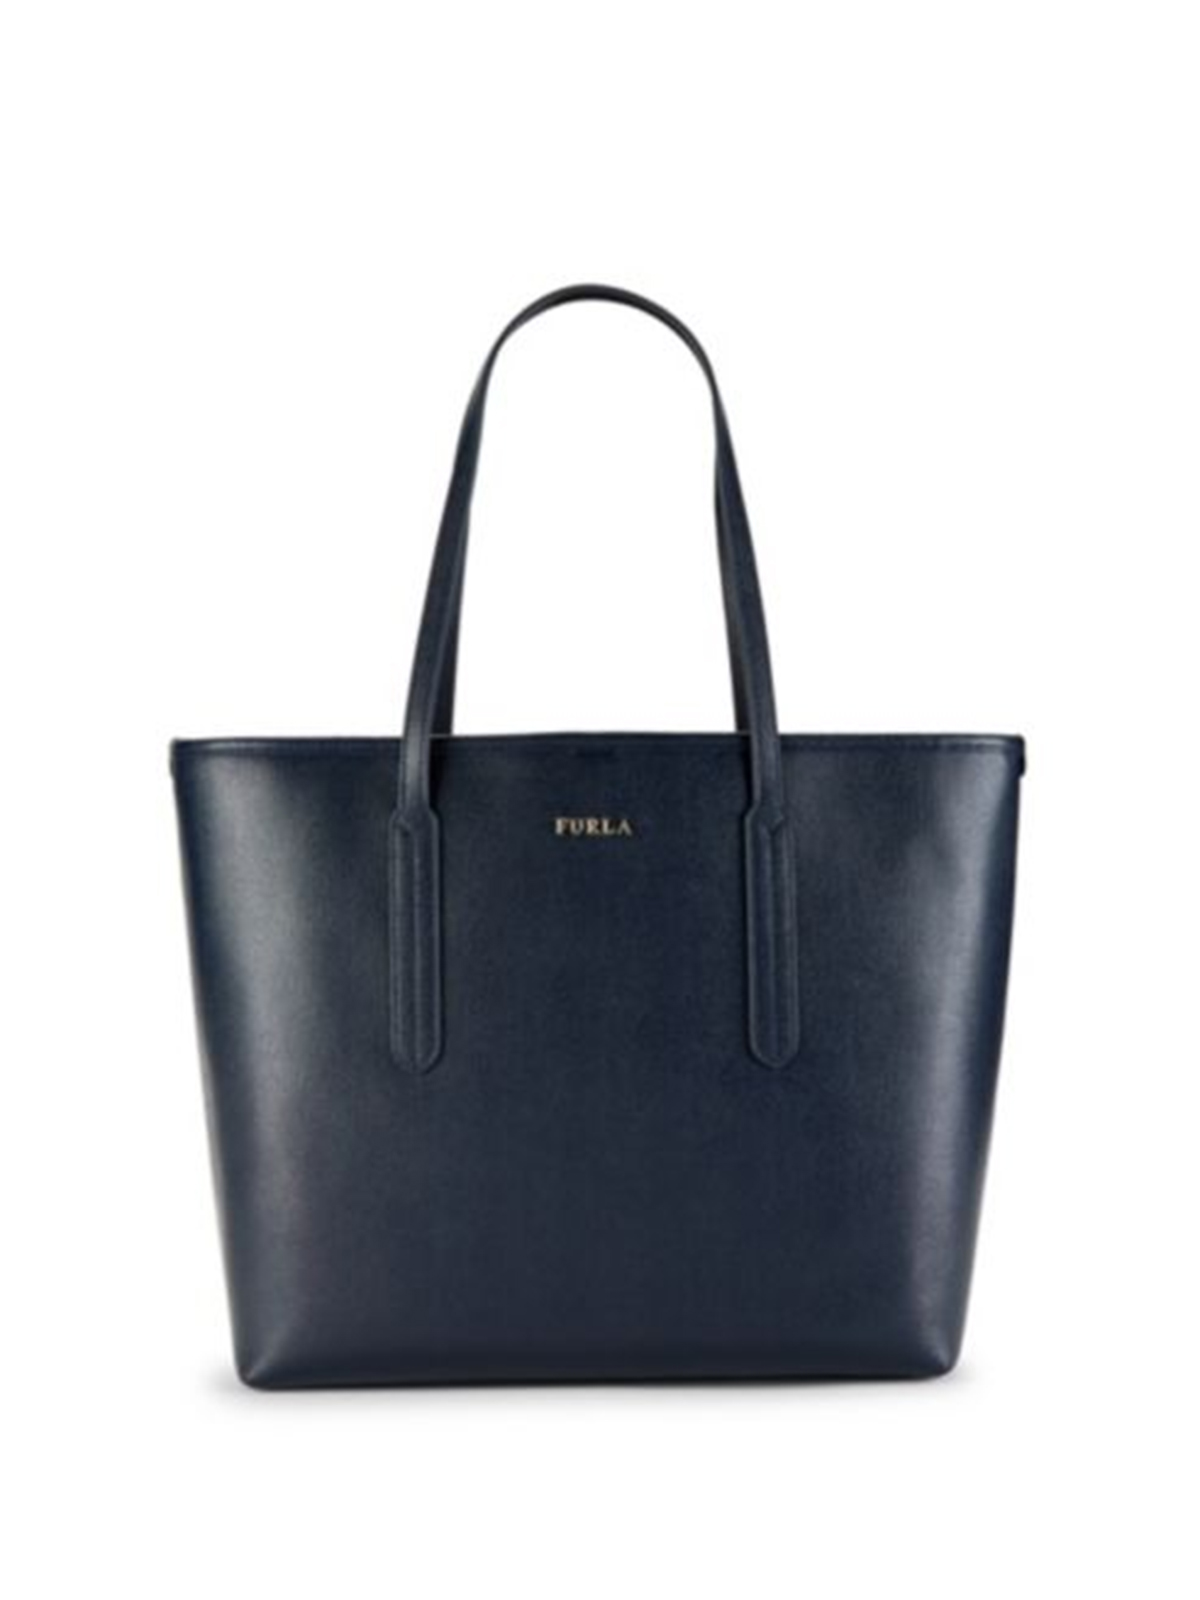 1f9c0536b724 This Furla Tote Bag Is 54% Off and We Can t Stop Freaking Out